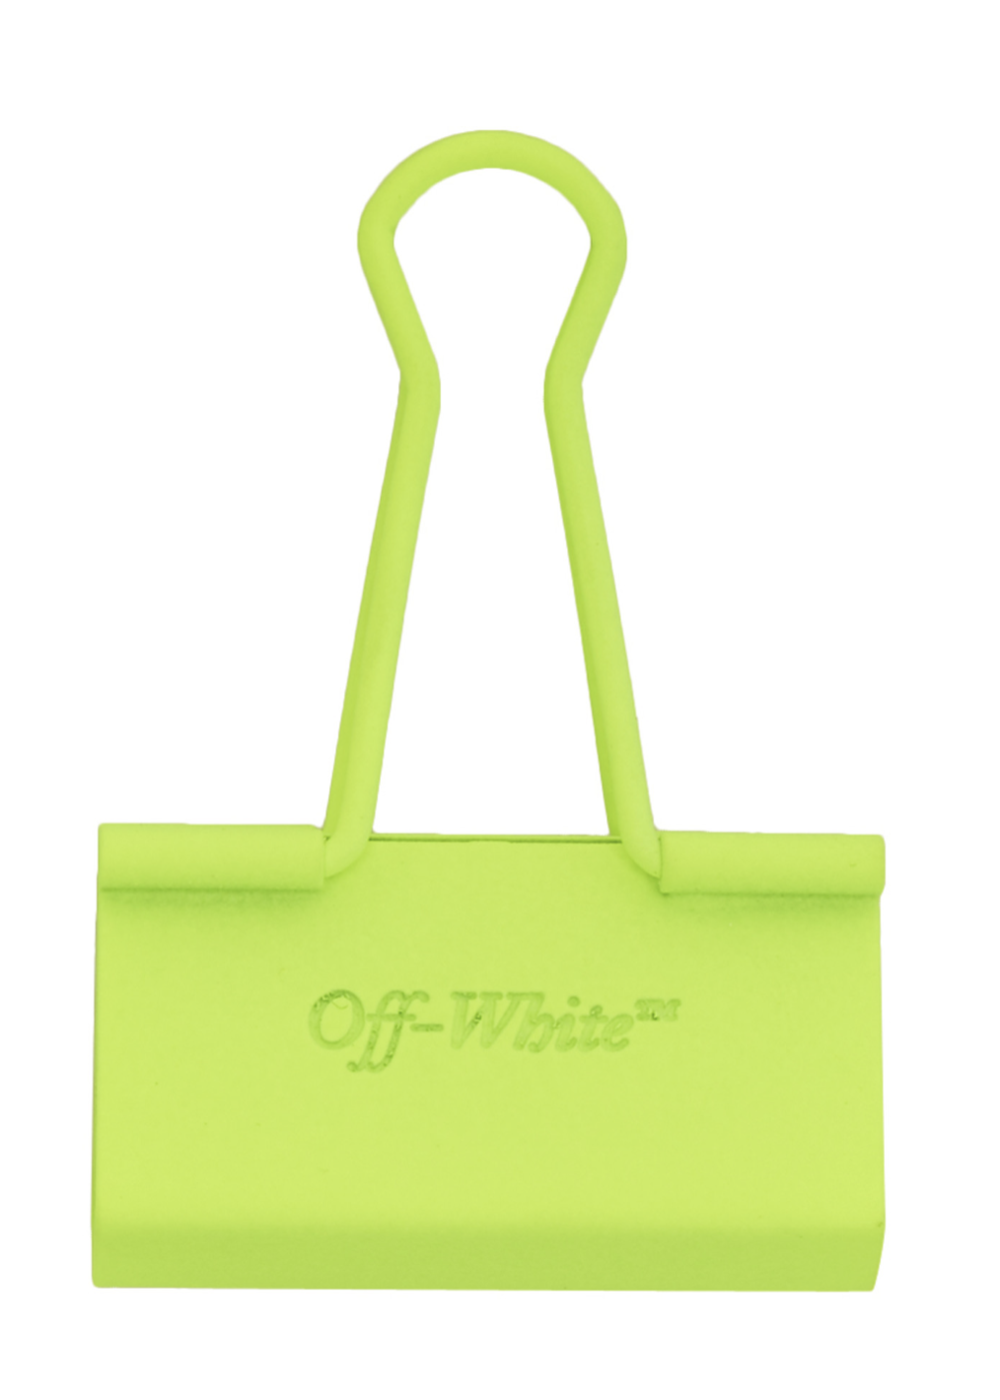 offwhite-neon-clip.png